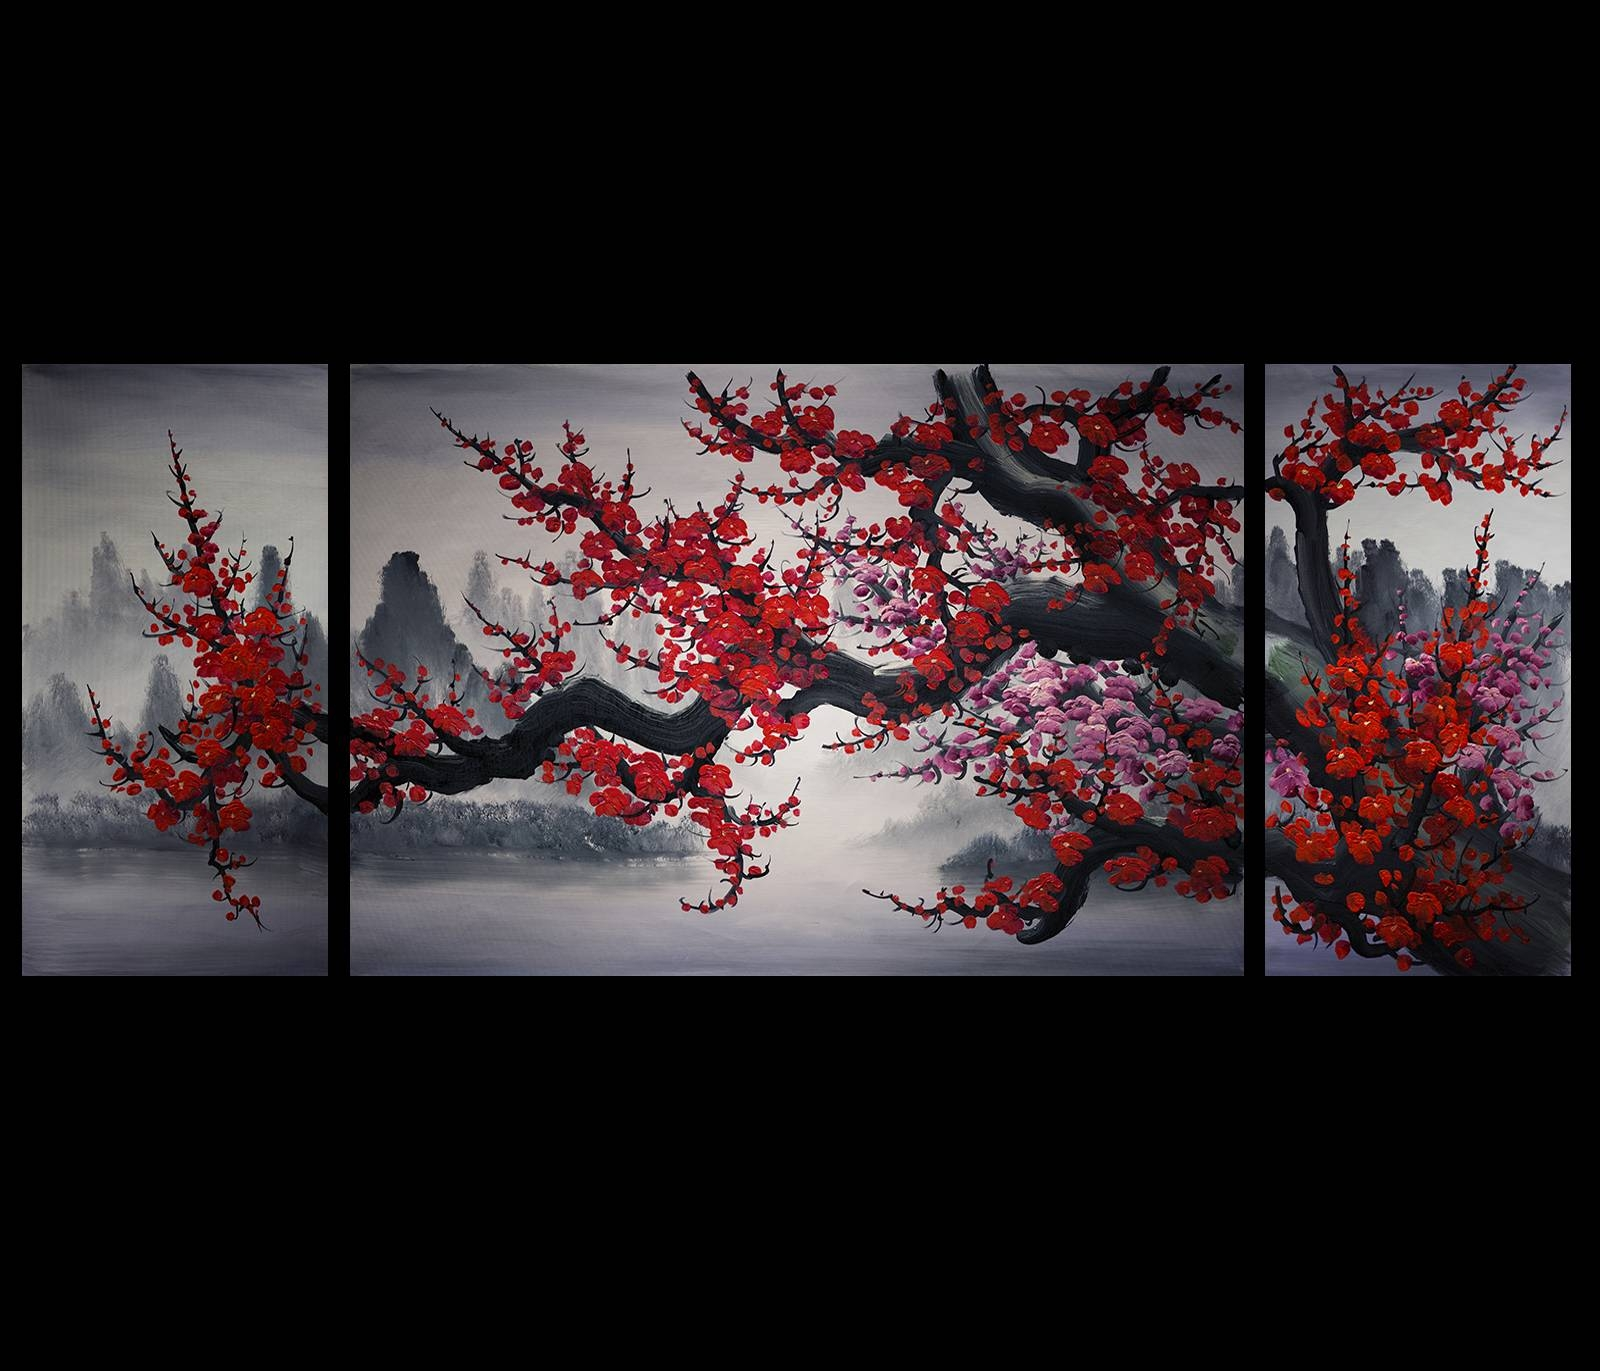 Wall Art Design Ideas: Mountain Red Colors Chinese Wall Art Pertaining To Most Recently Released Chinese Symbol Wall Art (View 11 of 30)